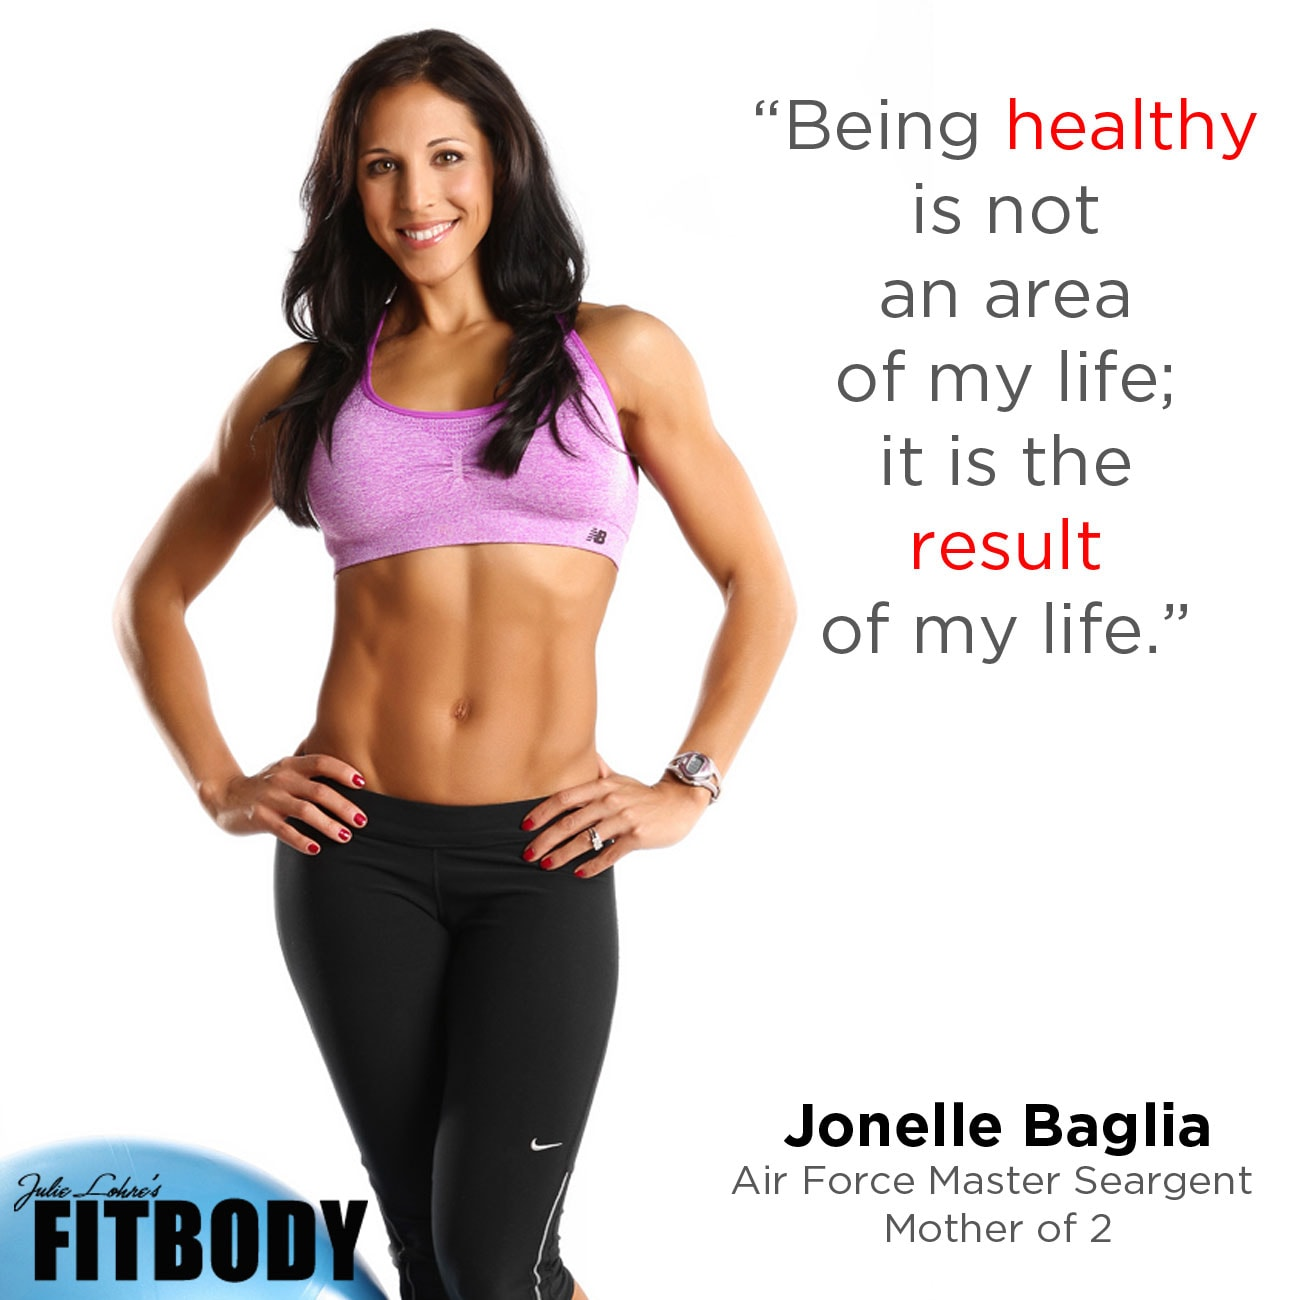 Fitness Motivation Jonelle Baglia